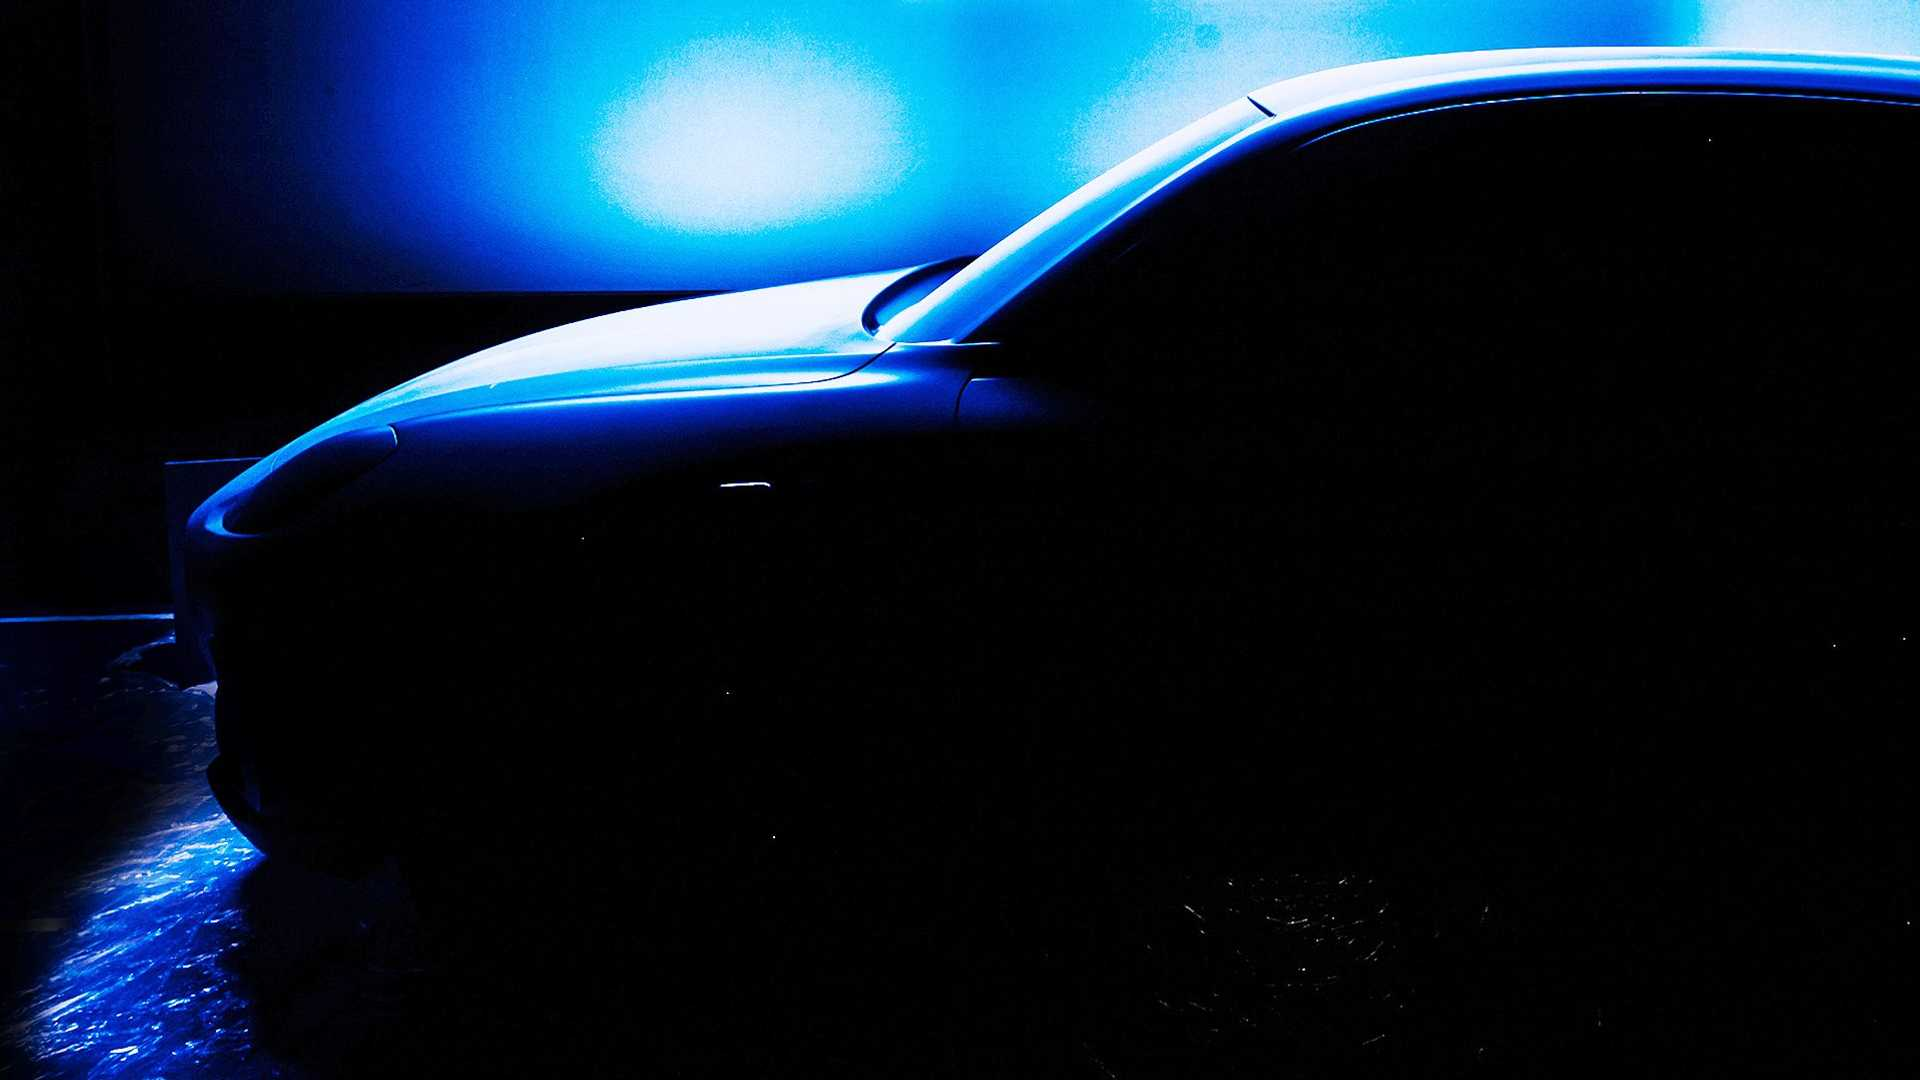 Maserati Grecale, the first teaser photo